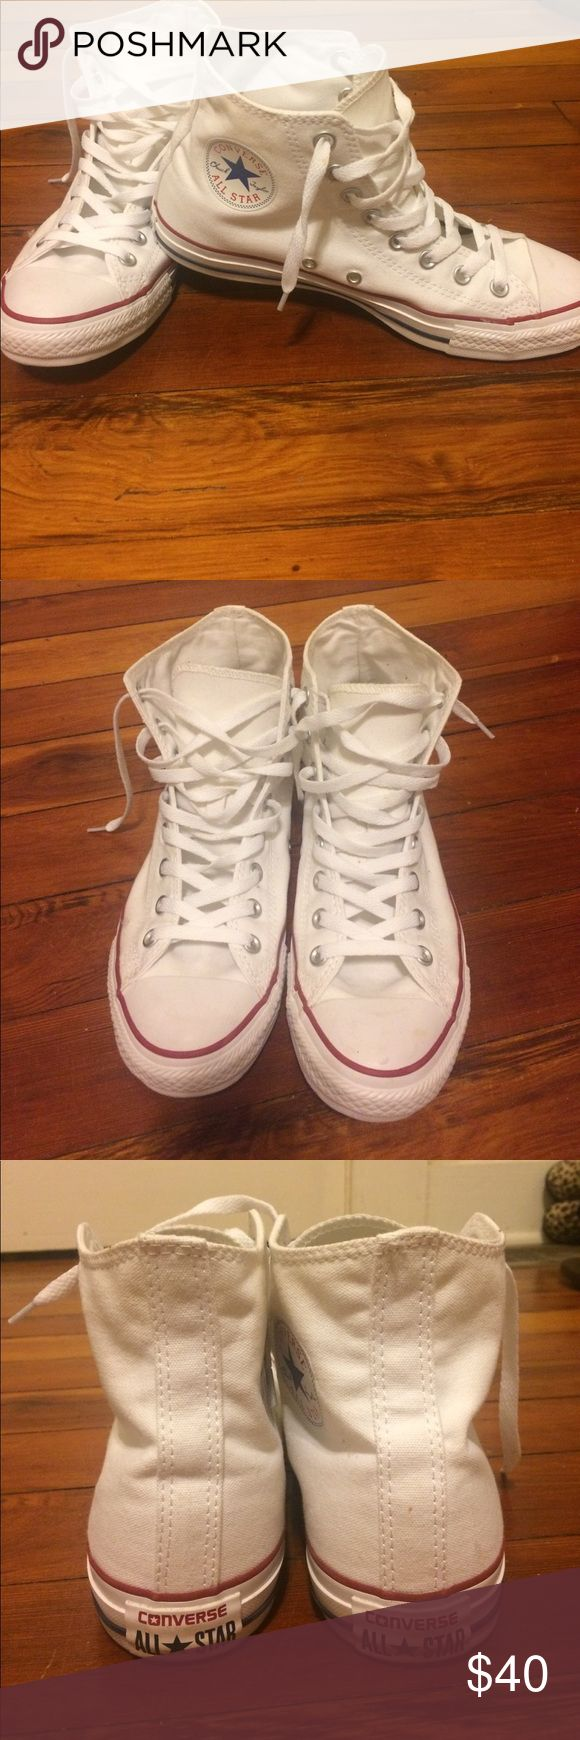 White High Top Converse I'm selling a pair of white high top converse in excellent condition. Only worn a handful of times. Size 8 men's / women's 10. Converse Shoes Sneakers